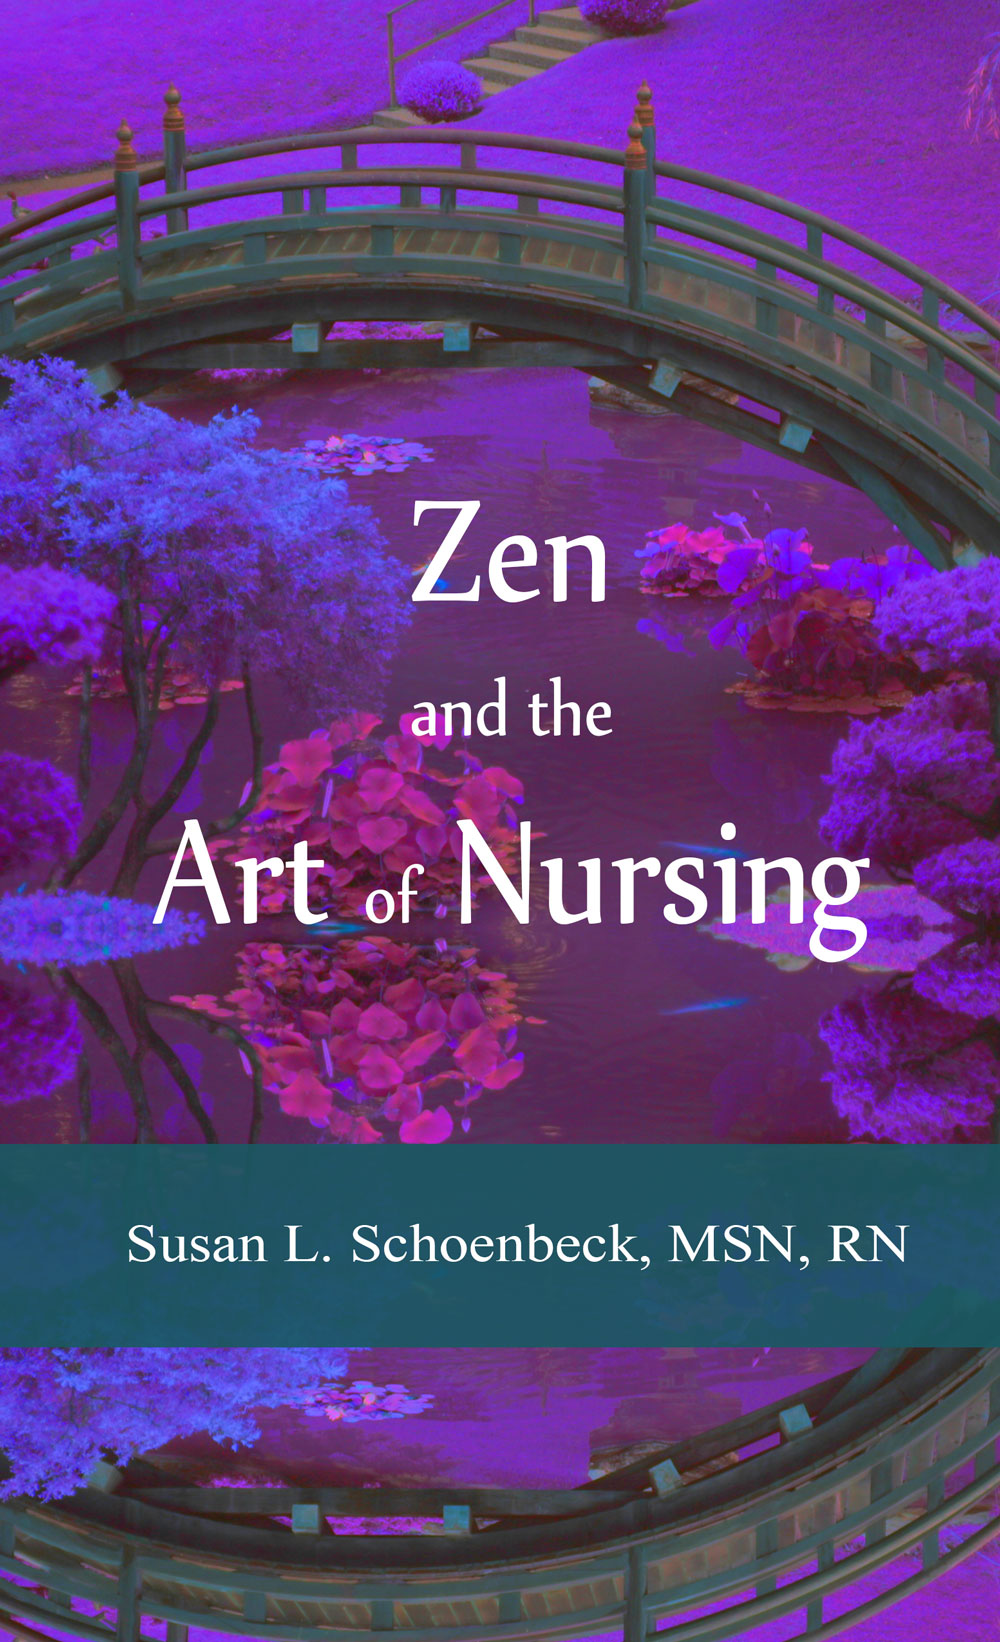 Zen and the Art of Nursing